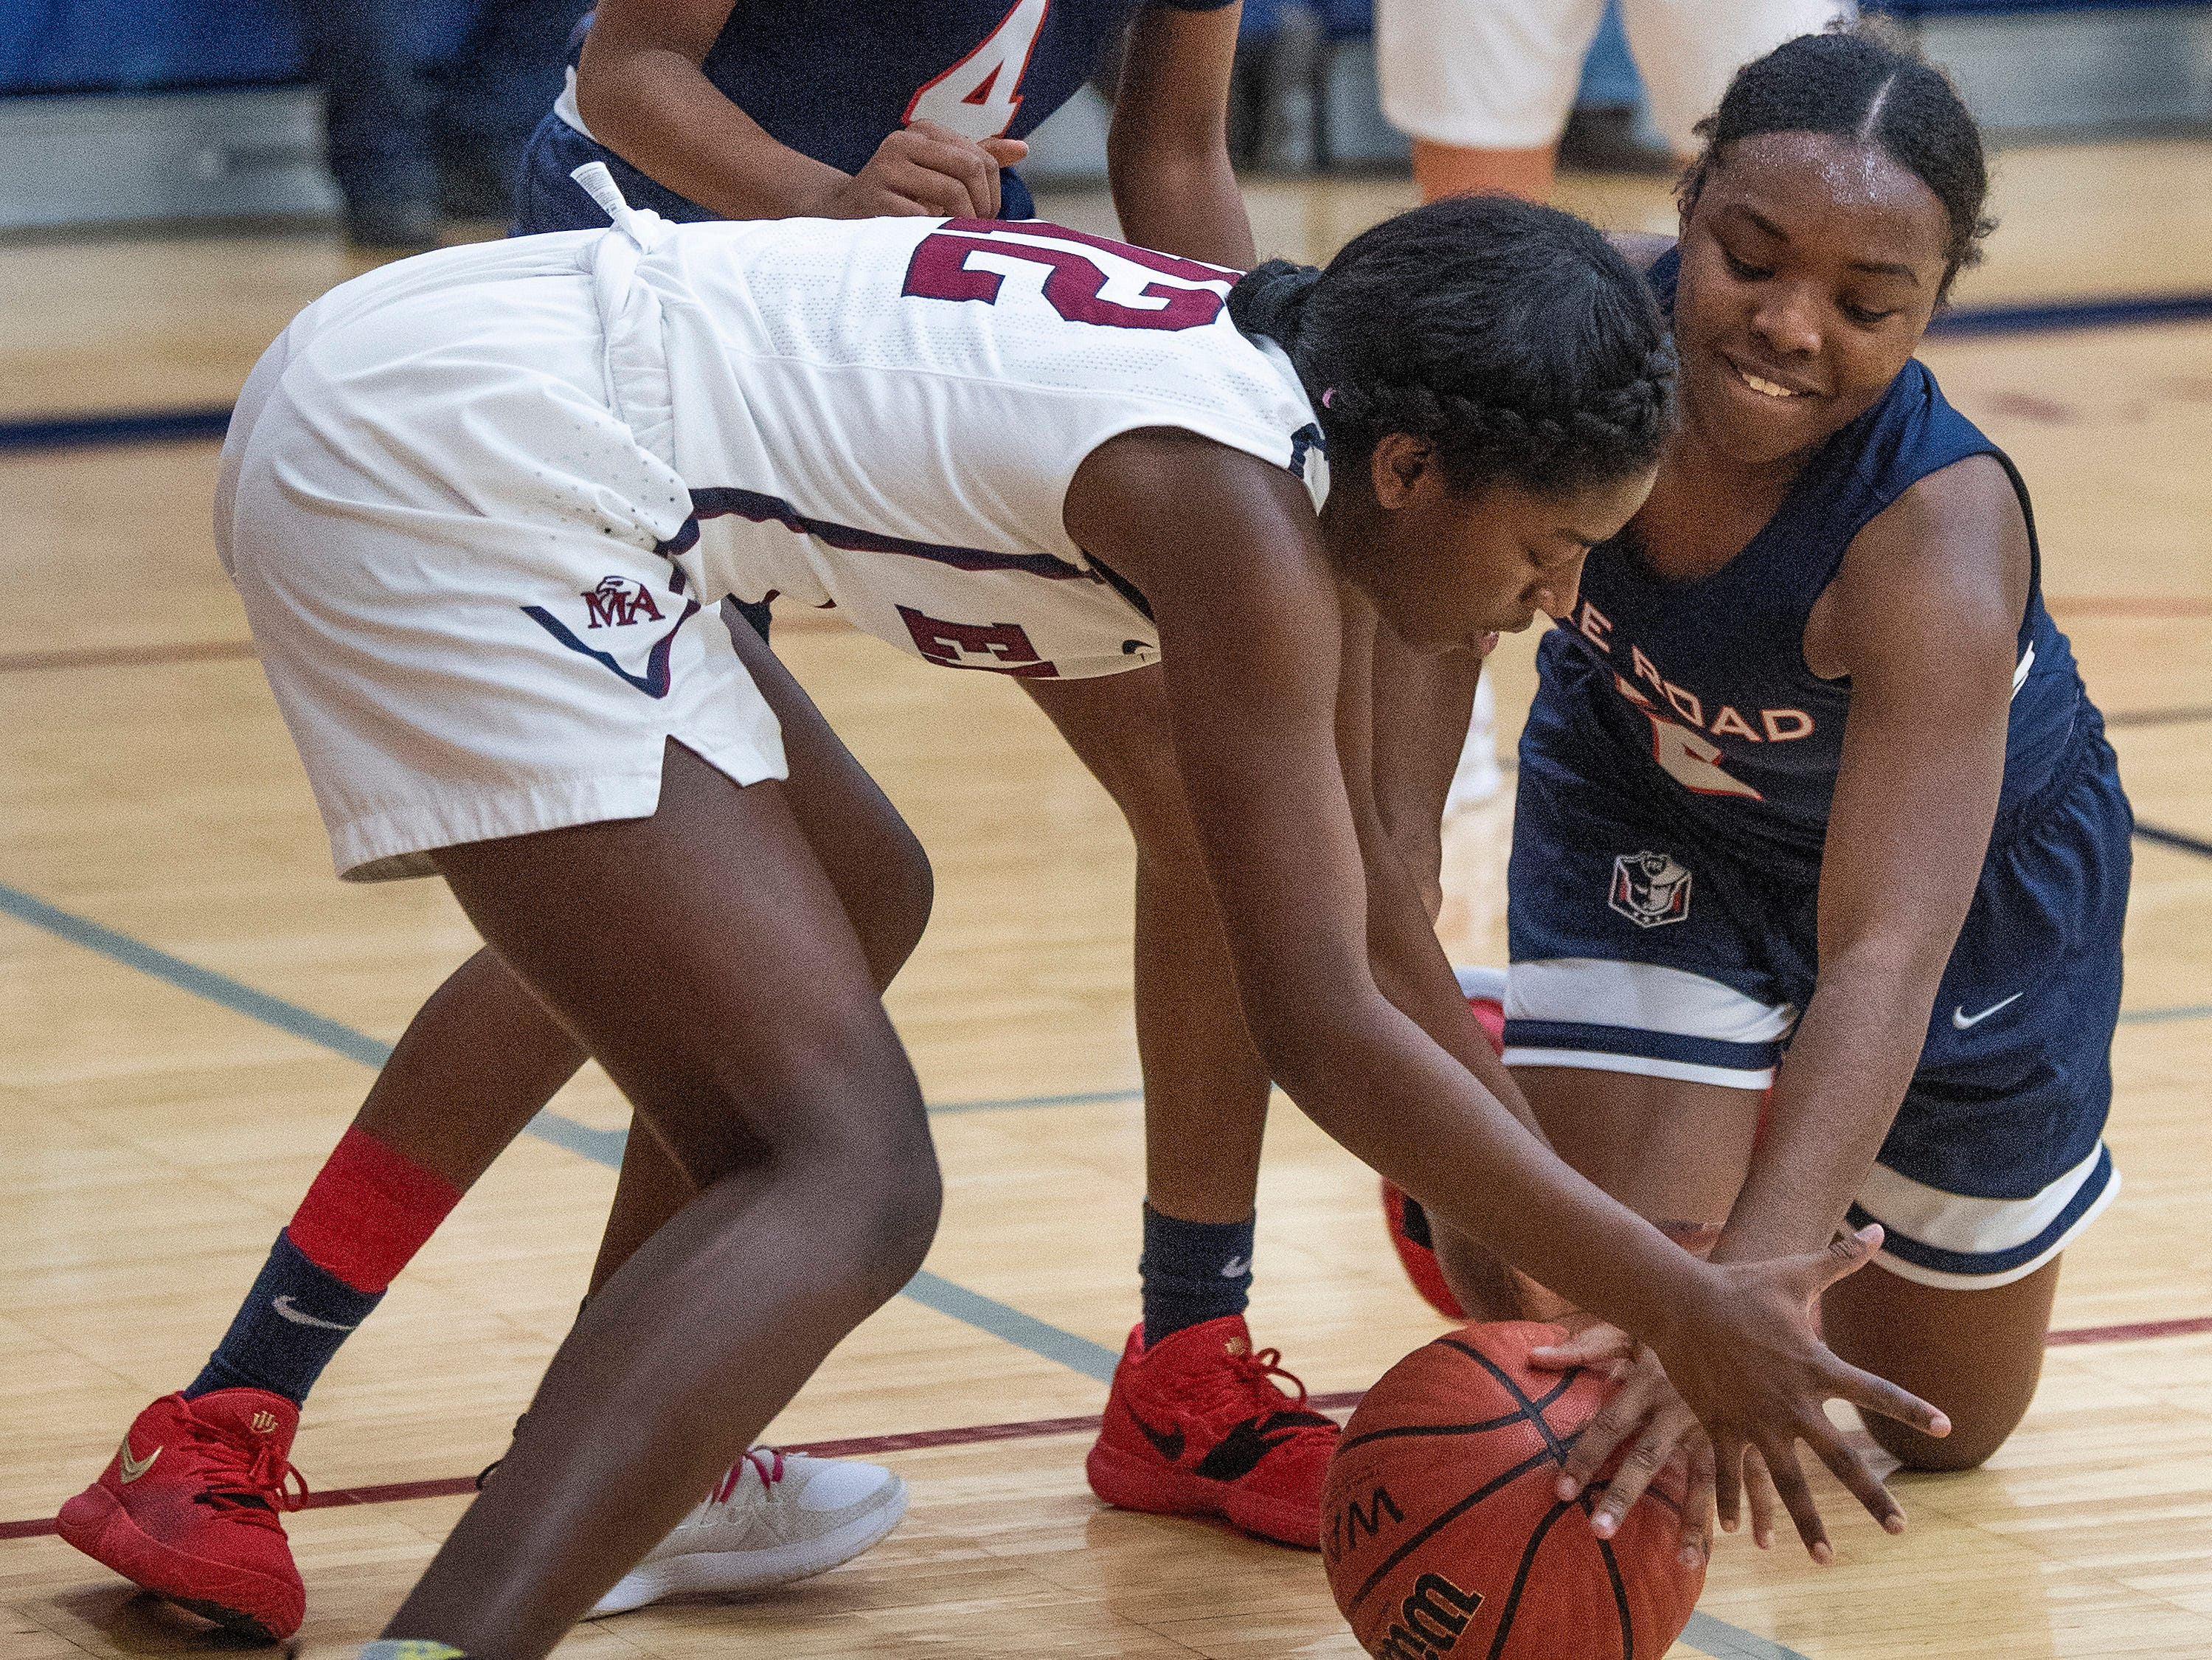 Montgomery Academy's Katherine Yelverton (12) and Pike Road's Jakhiah Lewis (2) go after a loose ball on the MA campus in Montgomery, Ala., on Friday February 8, 2019.